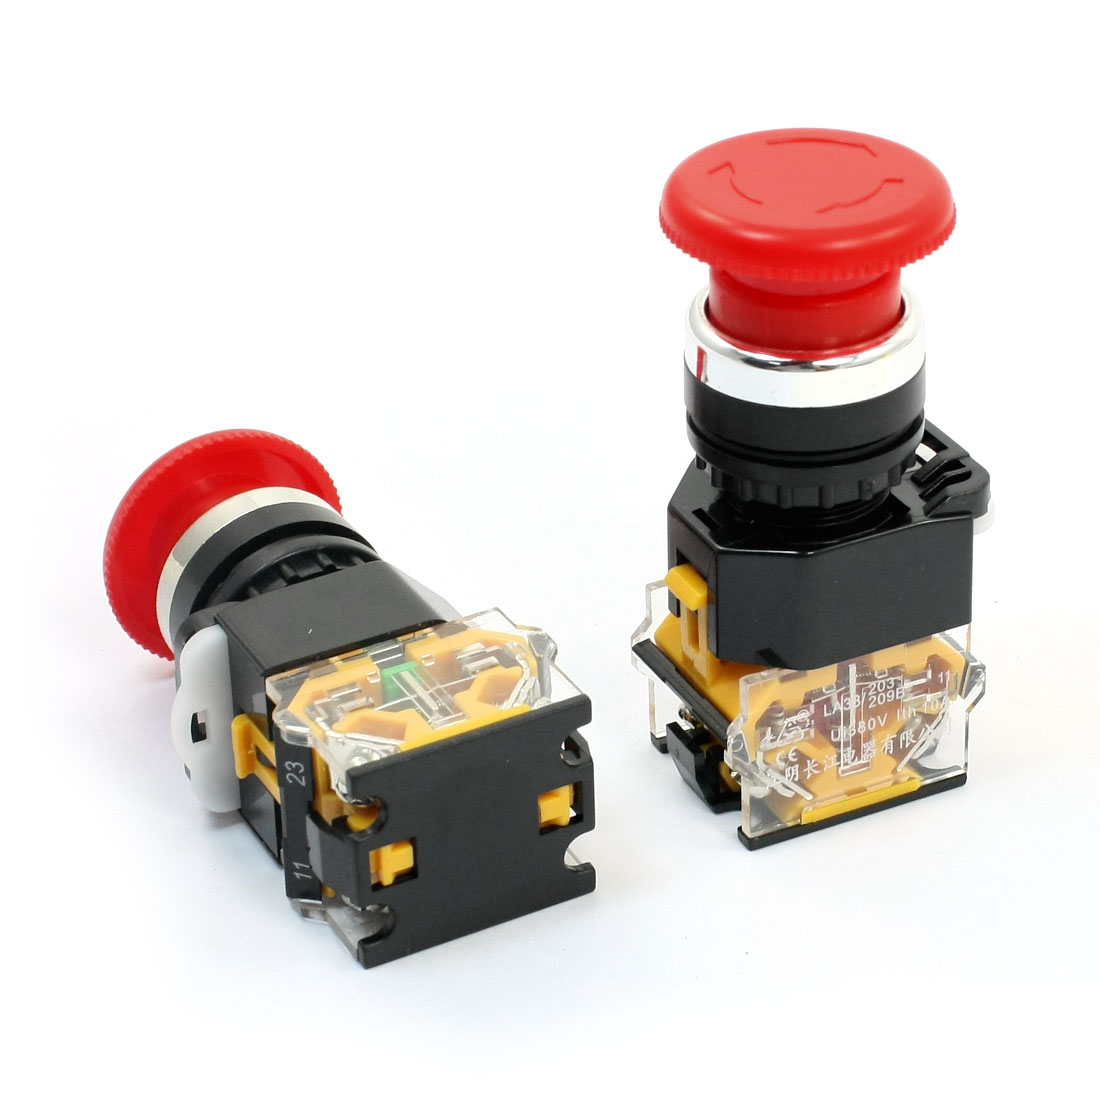 Ui 380V Ith 10A 21mm Thread Panel Mounting DPST Latching Rotary Reset Red Mushroom Head Push Button Switch 2Pcs